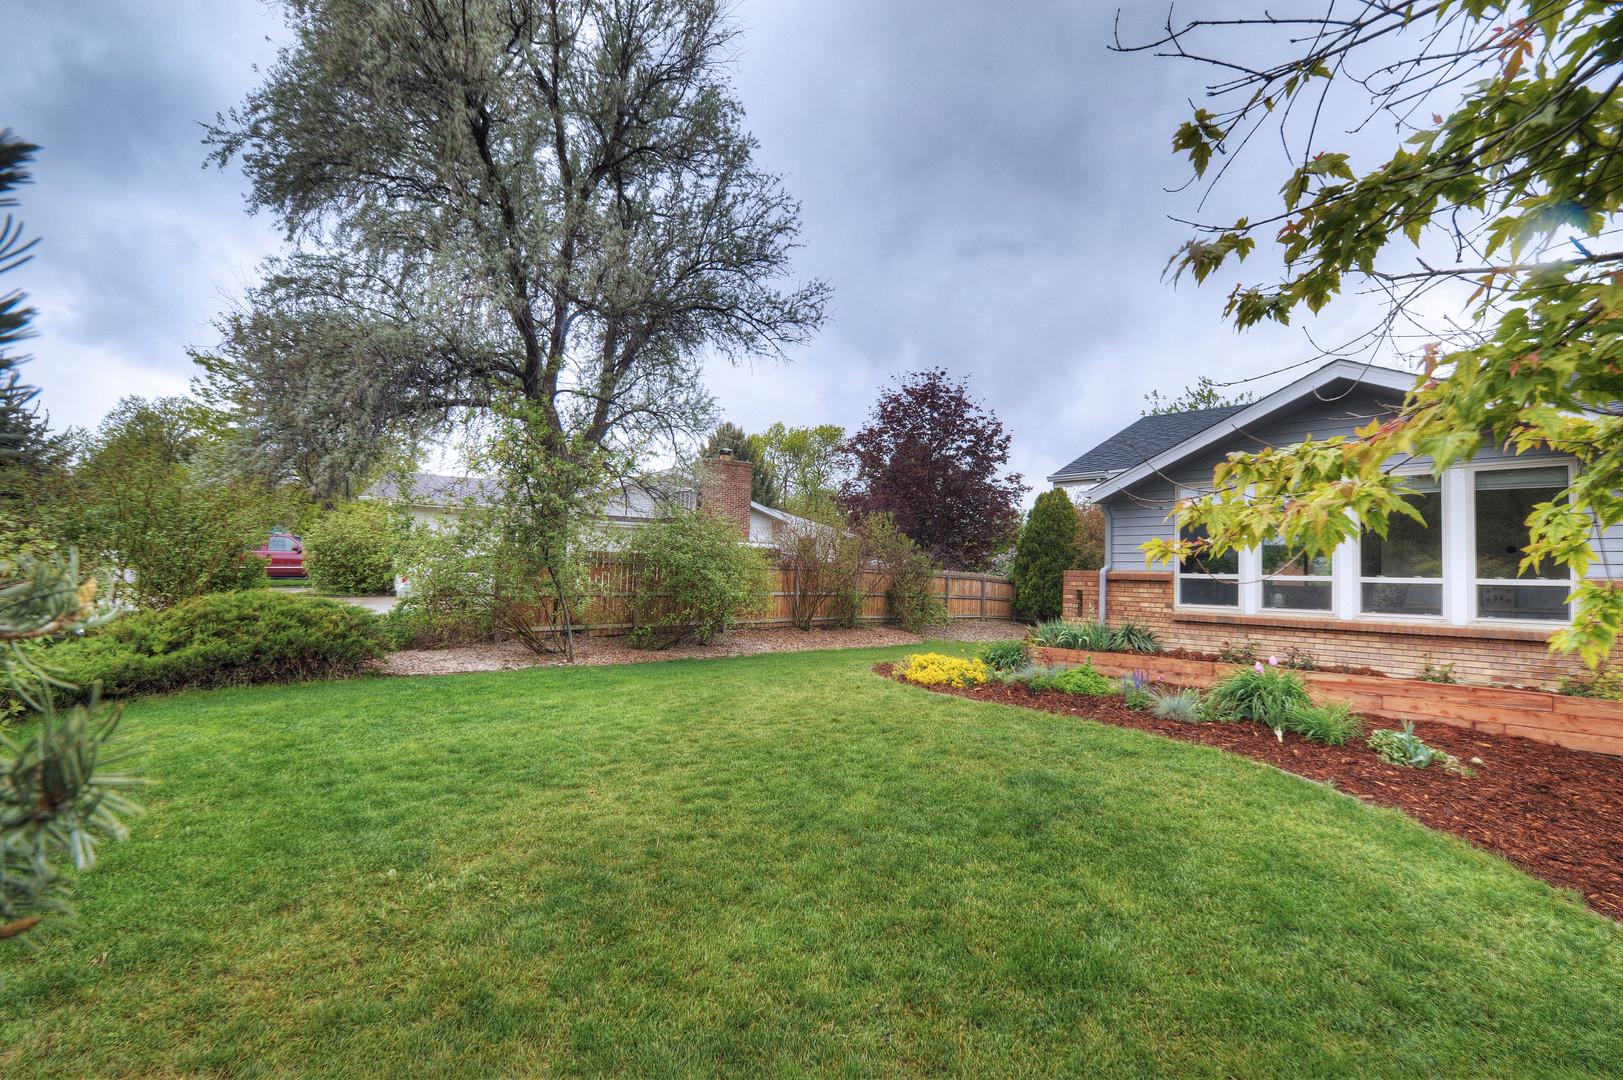 7445 Mt Sherman Rd, Gunbarrel